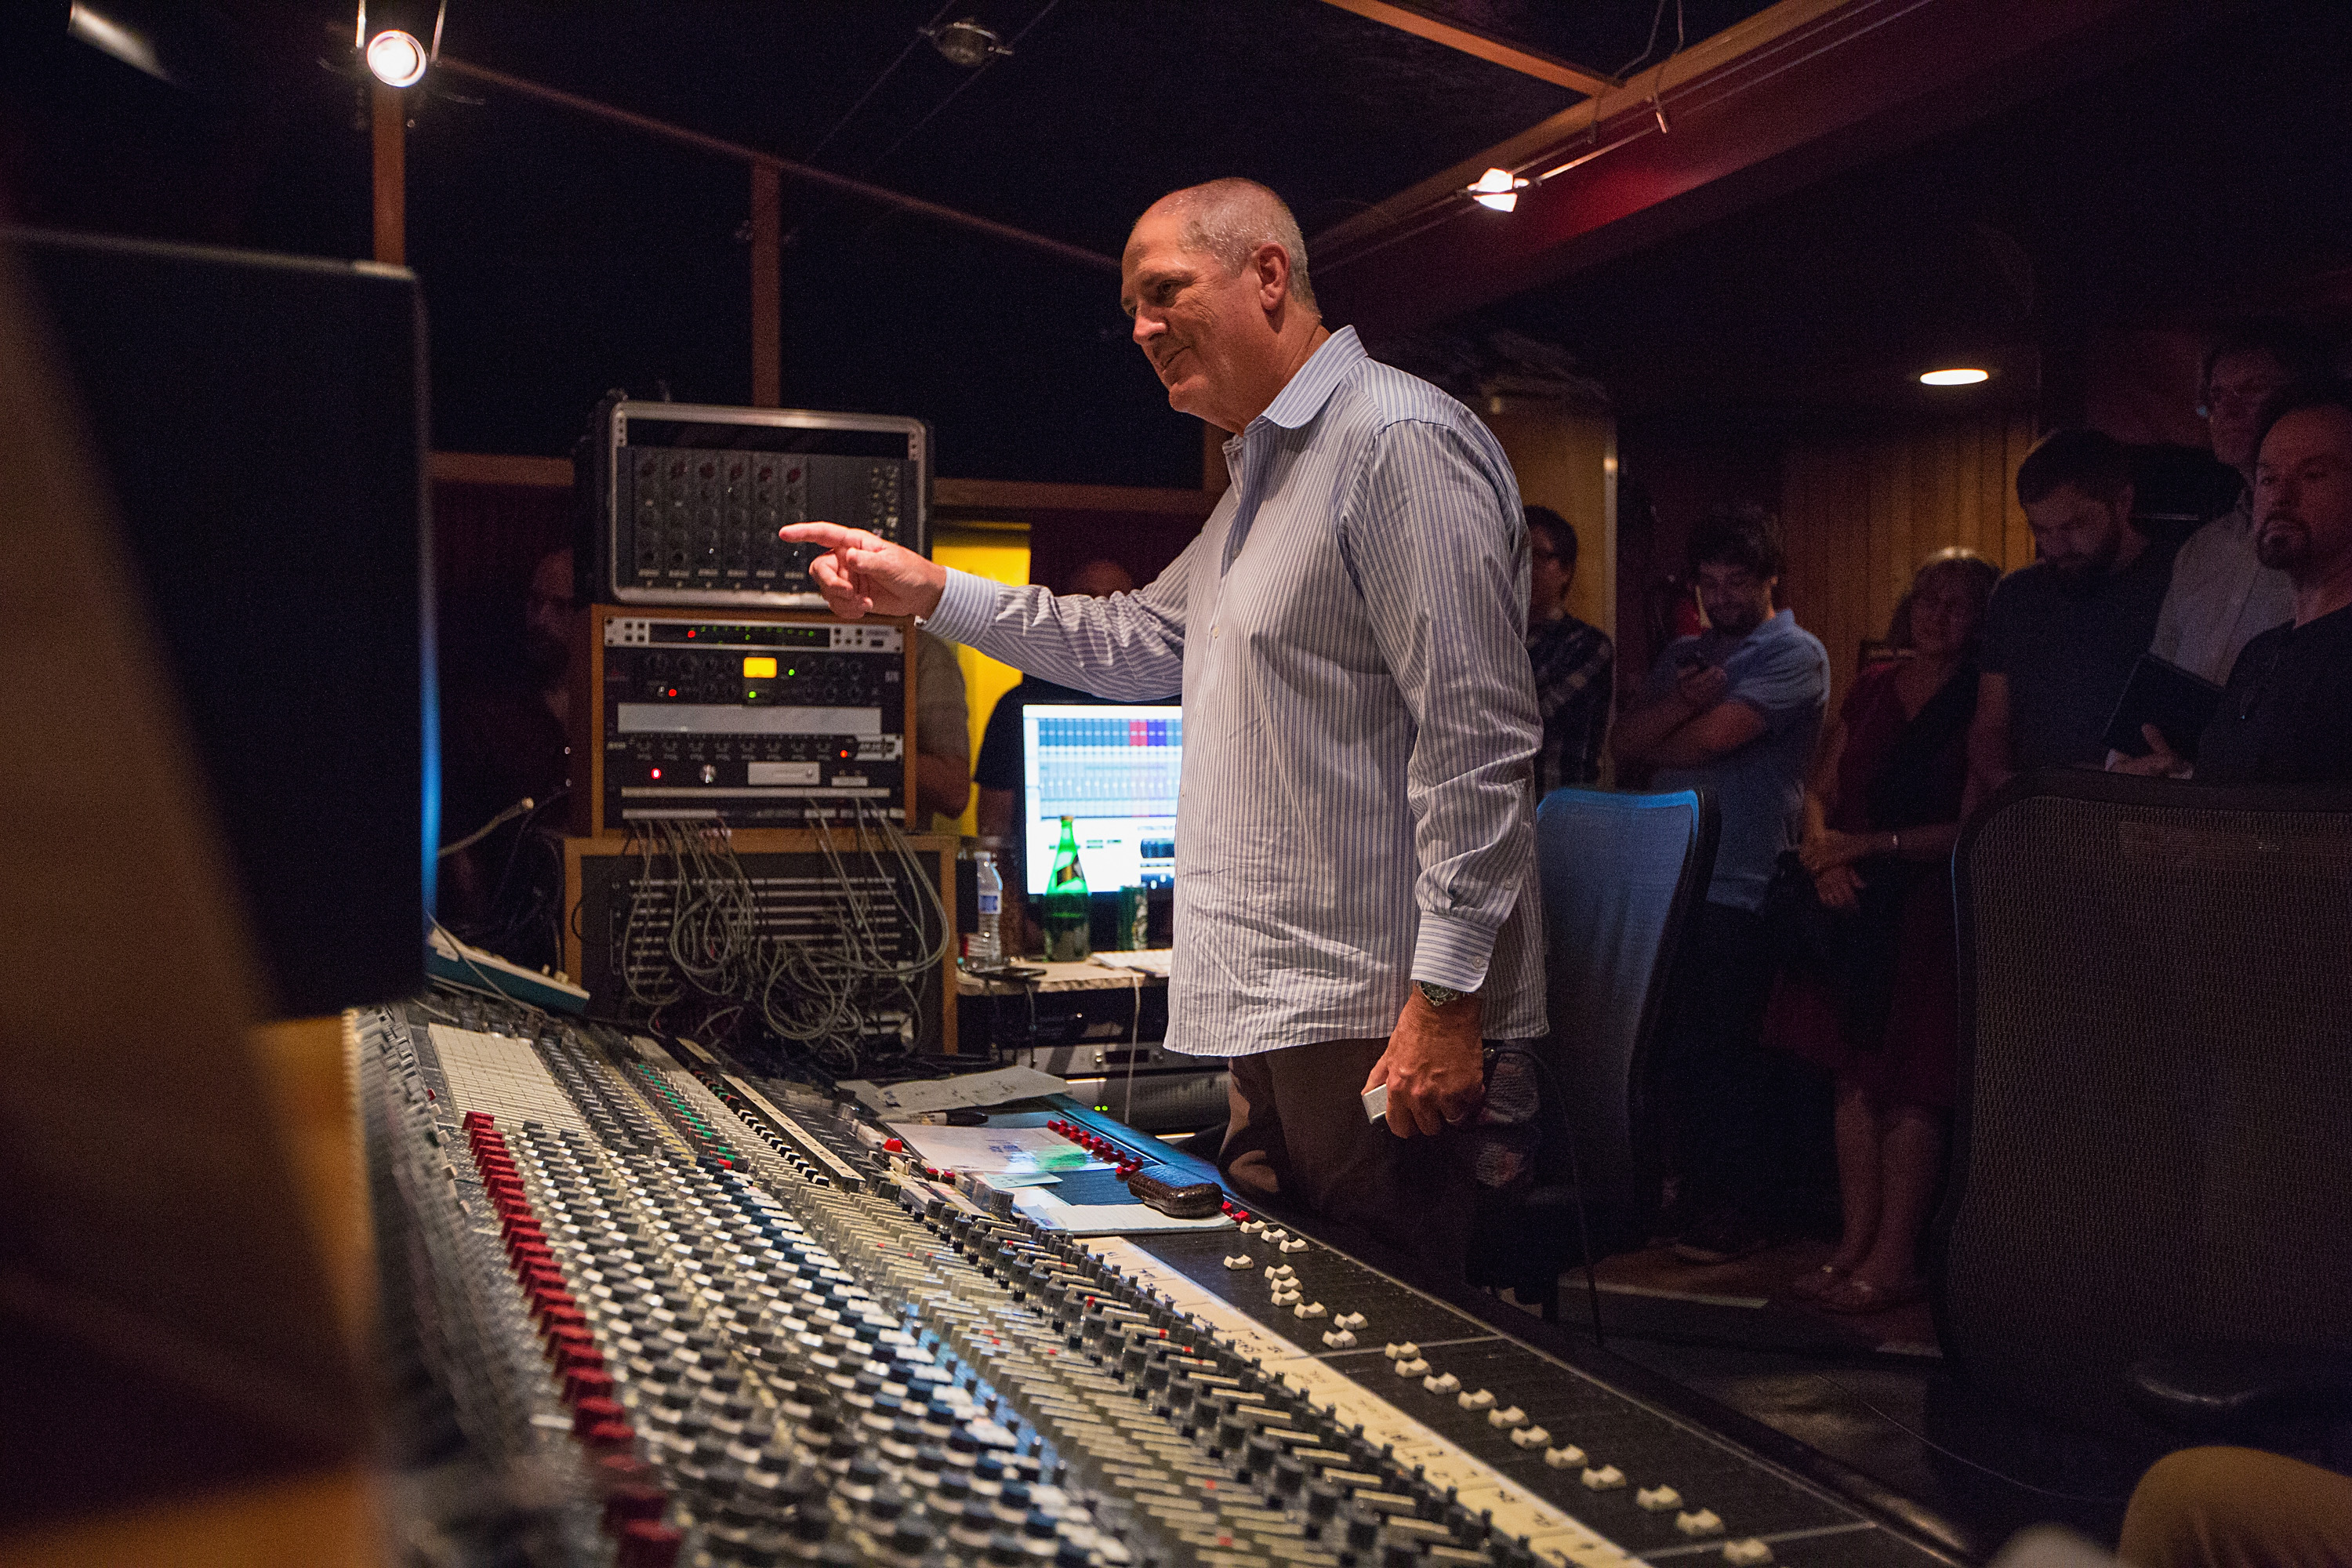 Producer Mike Clink at work in the recording studio